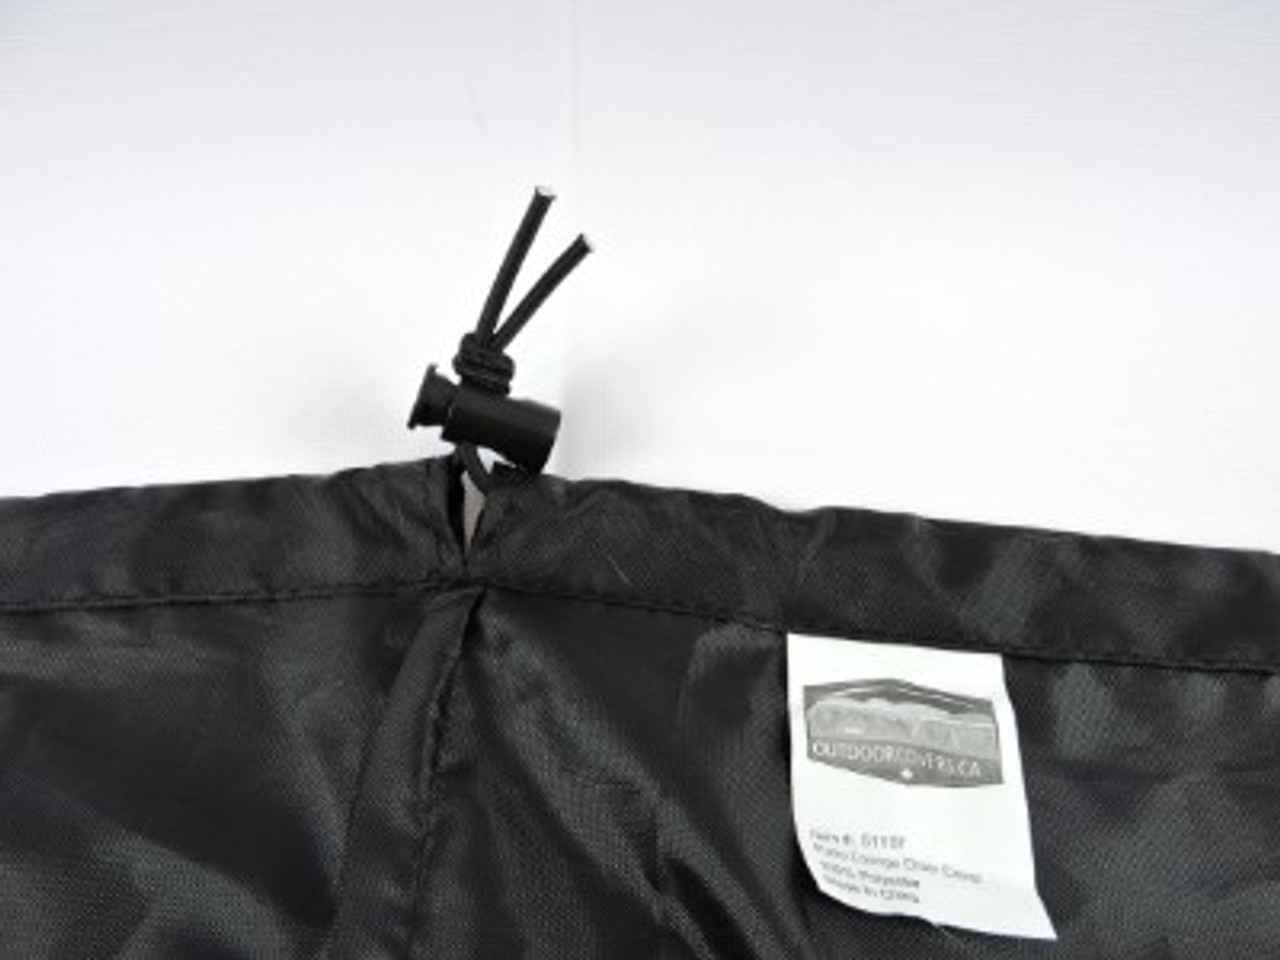 Advantage shock cord hem with adjustable lock for snug fit